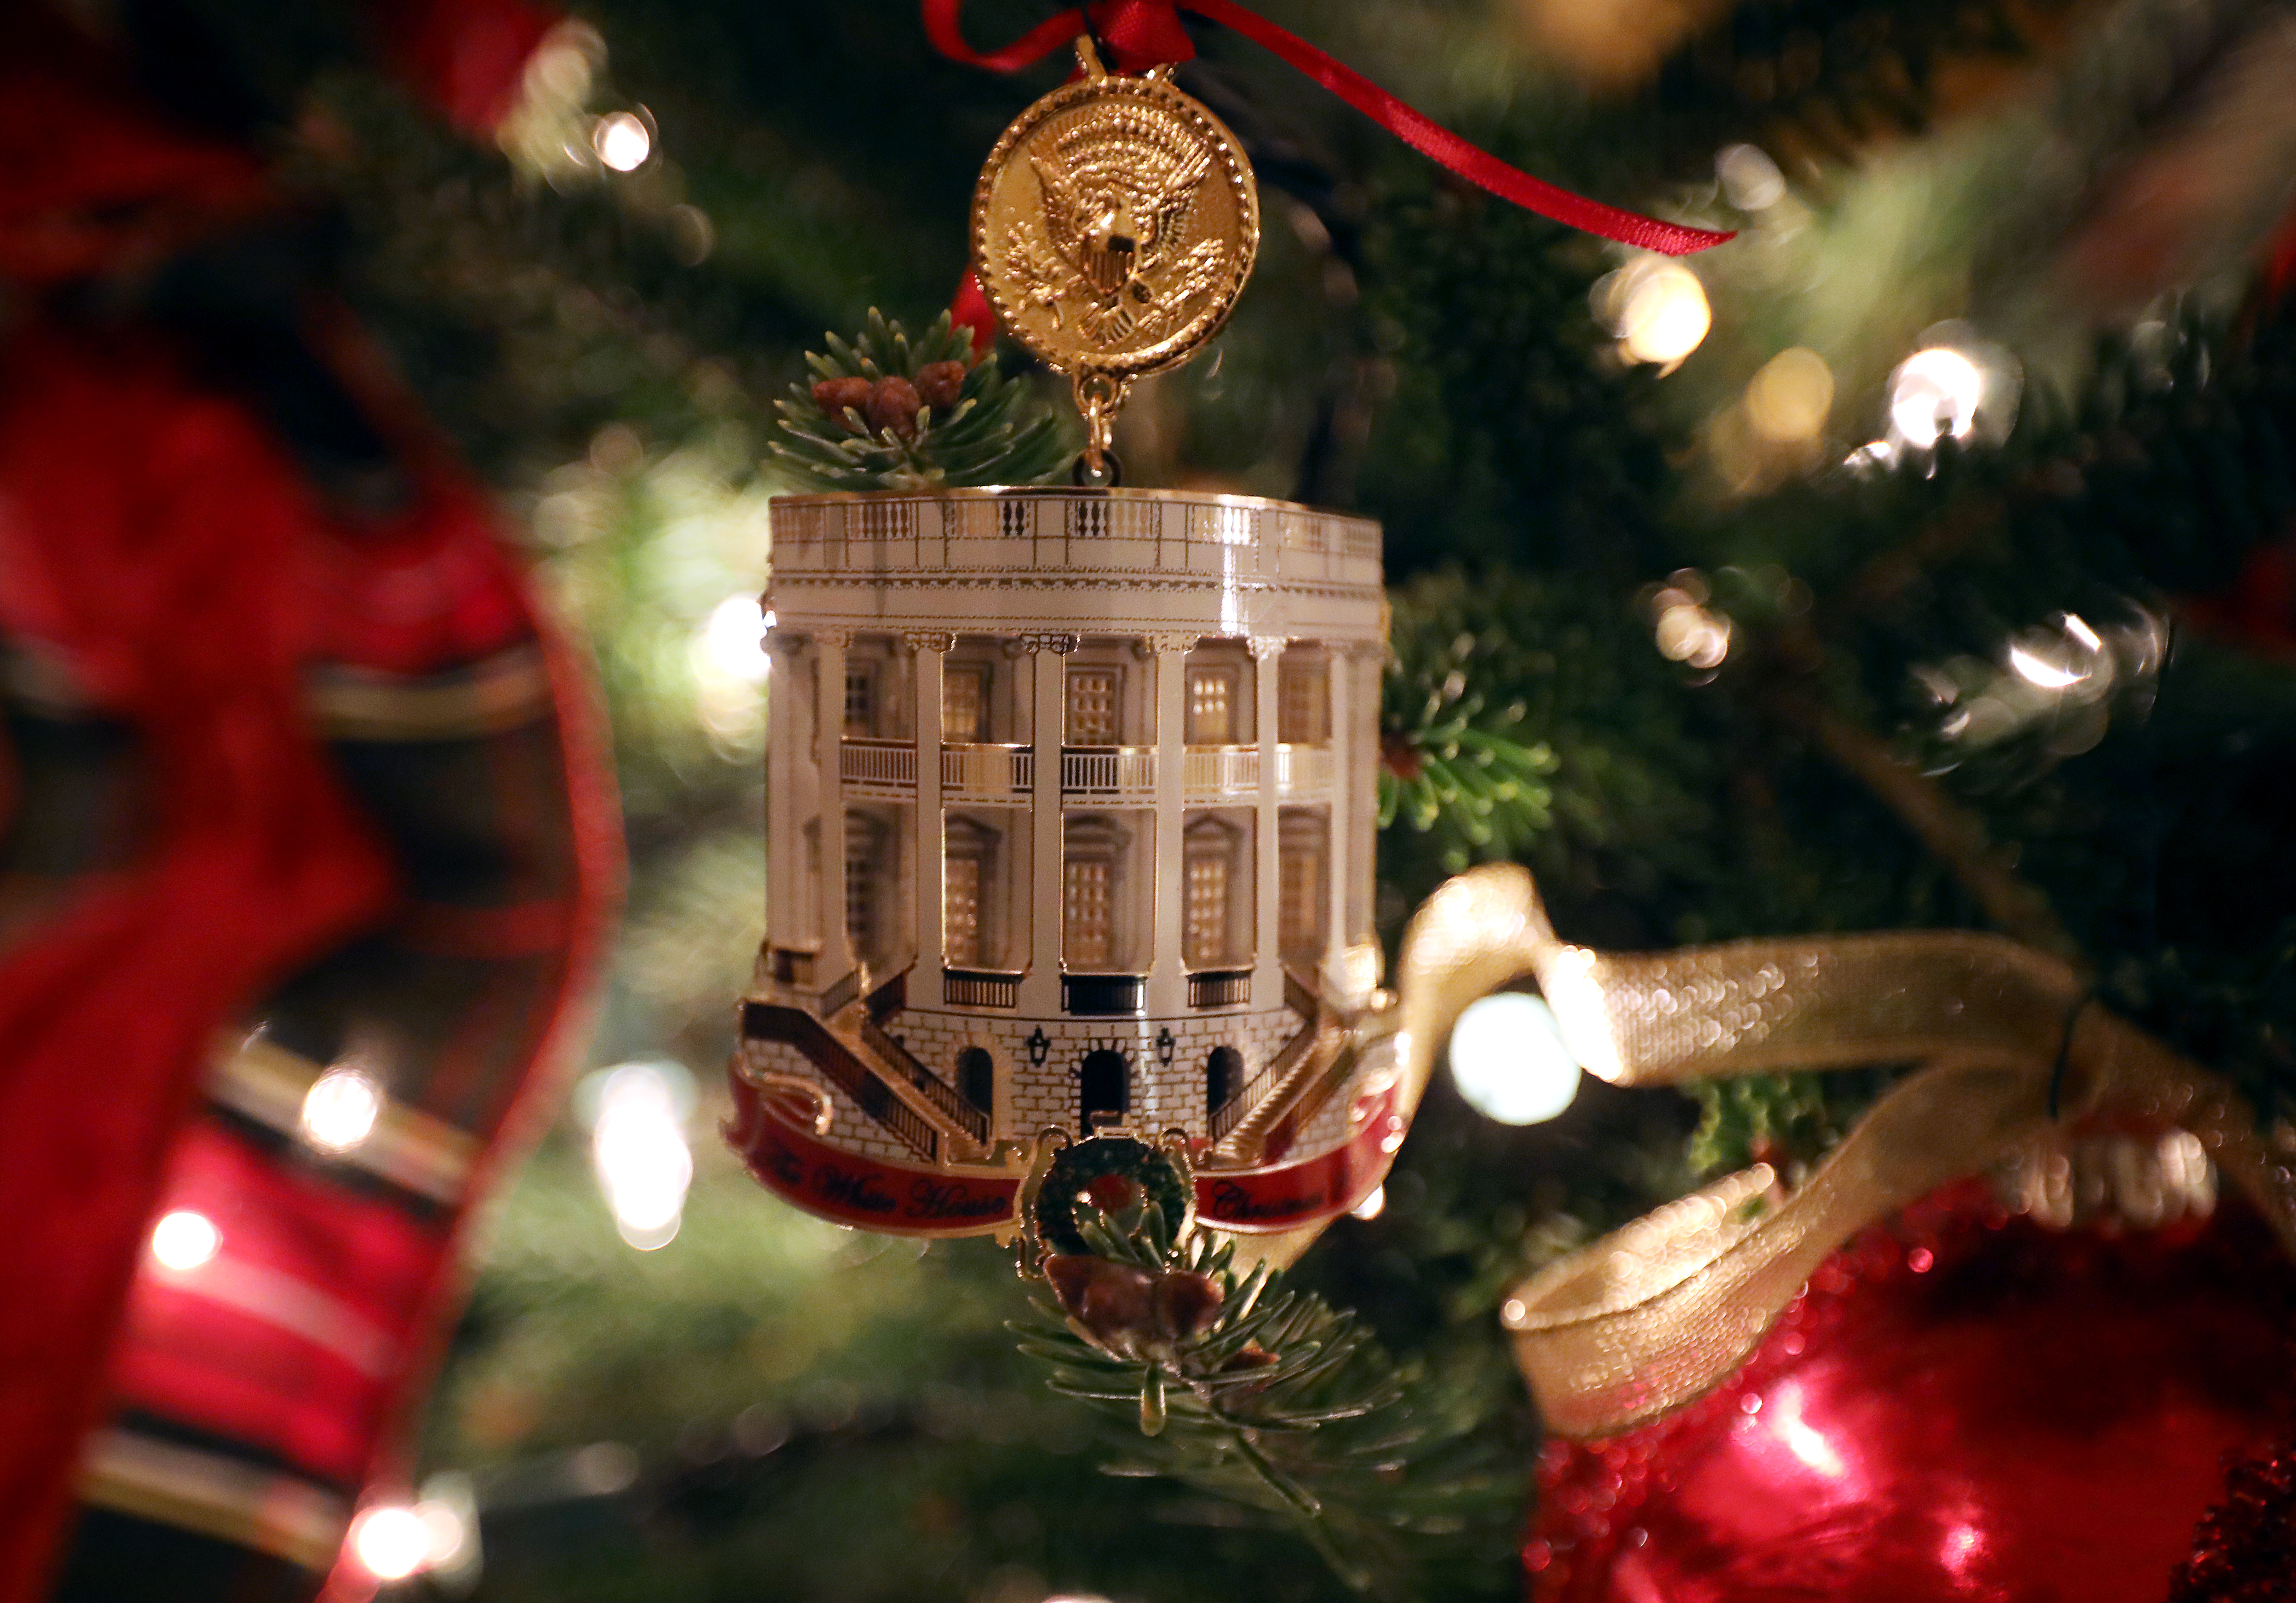 WASHINGTON, DC - NOVEMBER 26: The White House Historical Association Official 2018 White House Christmas Ornament hangs on a tree in the Library at the White House November 26, 2018 in Washington, DC. The 2018 theme of the White House holiday decorations is 'American Treasures,' and features patriotic displays highlighting the country's 'unique heritage.' The White House expects to host 100 open houses and more than 30,000 guests who will tour the topiary trees, architectural models of major U.S. cities, the Gold Star family tree and national monuments in gingerbread. (Photo by Chip Somodevilla/Getty Images)